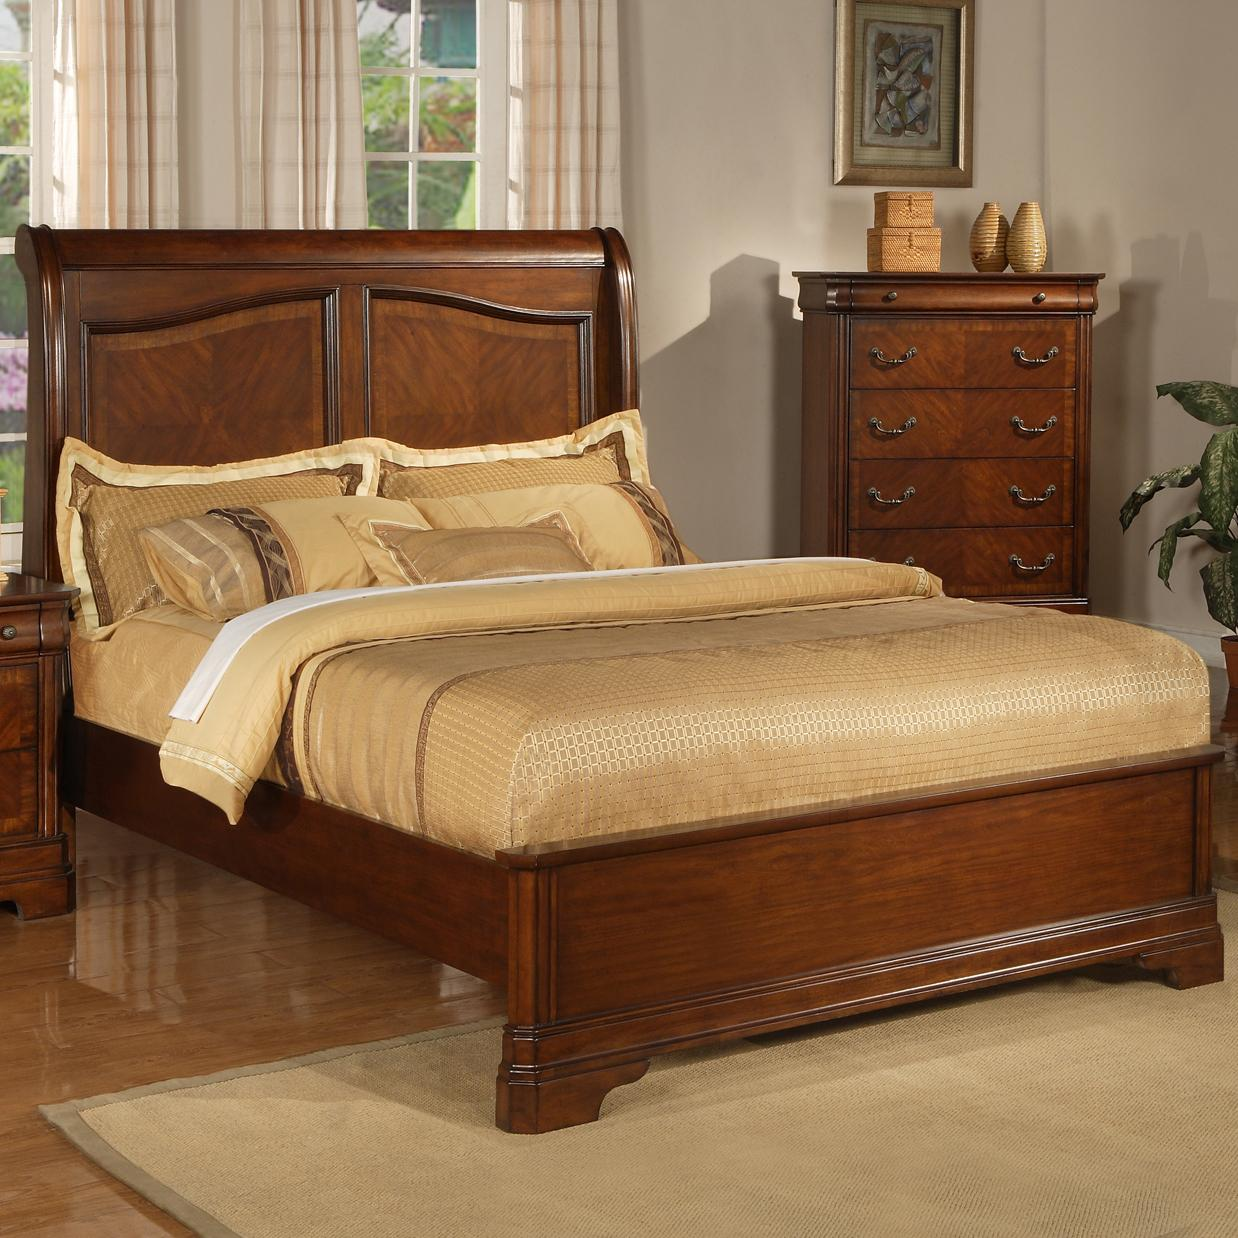 king sleigh bed with low profile footboard by liberty furniture wolf and gardiner wolf furniture. Black Bedroom Furniture Sets. Home Design Ideas